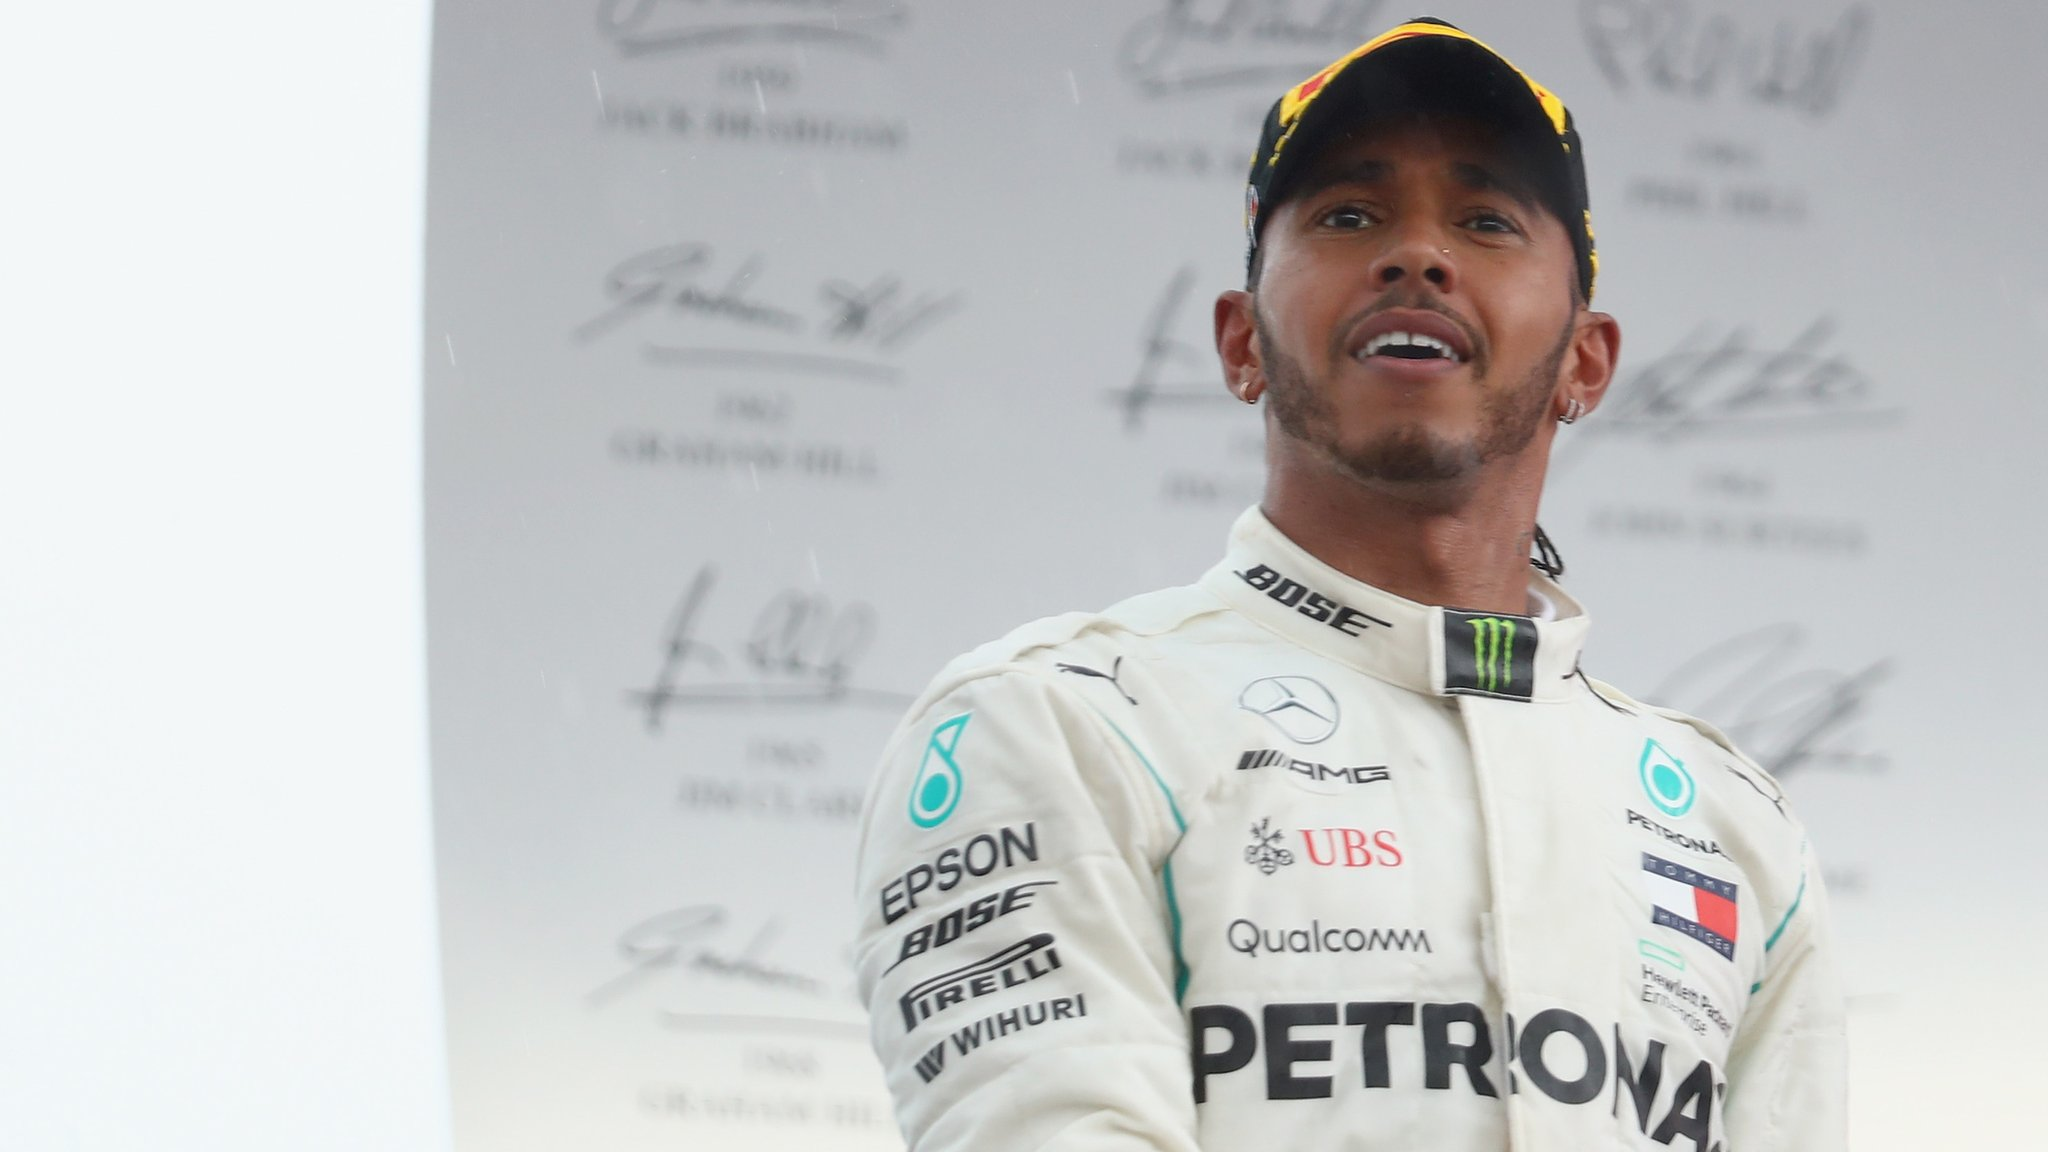 German GP: Lewis Hamilton reflects on 'emotional day' after win and reprimand